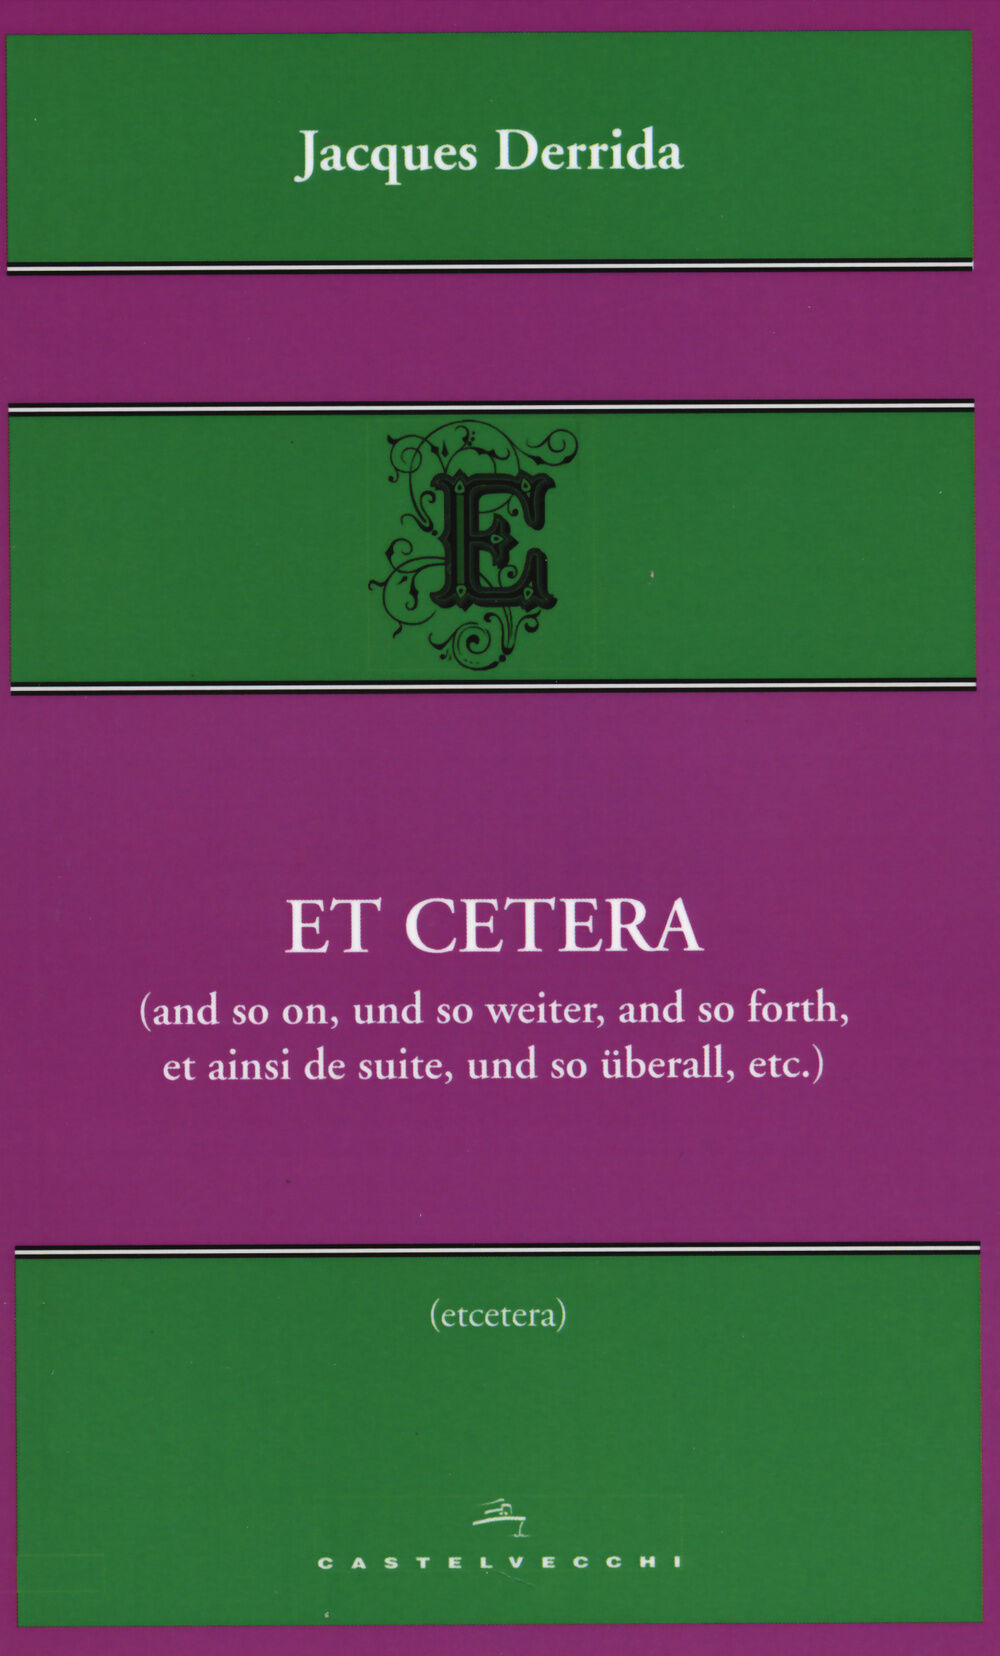 Et cetera (and so on, und so weiter, and so forth, et ainsi de suite, und so überall, etc.)